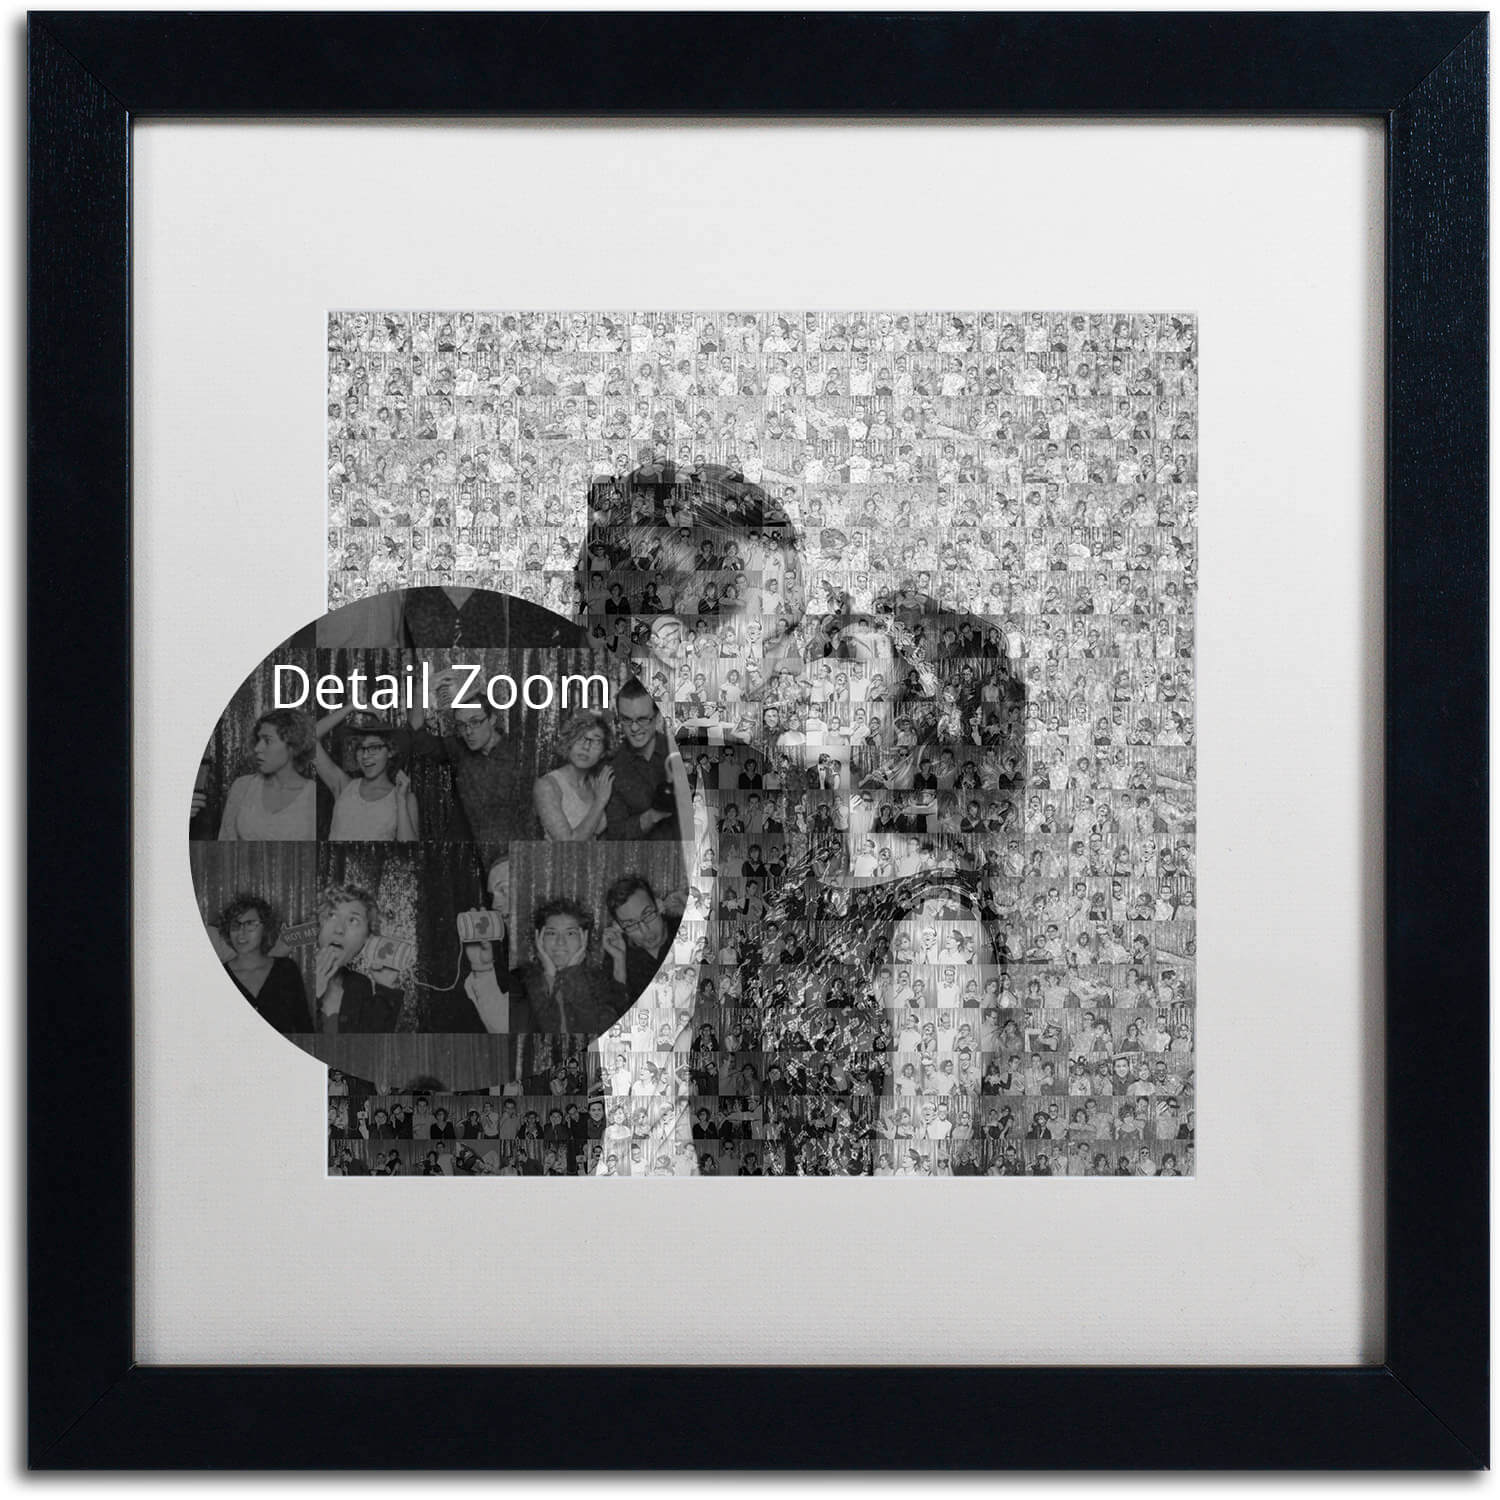 Couple kissing in a framed photo collage